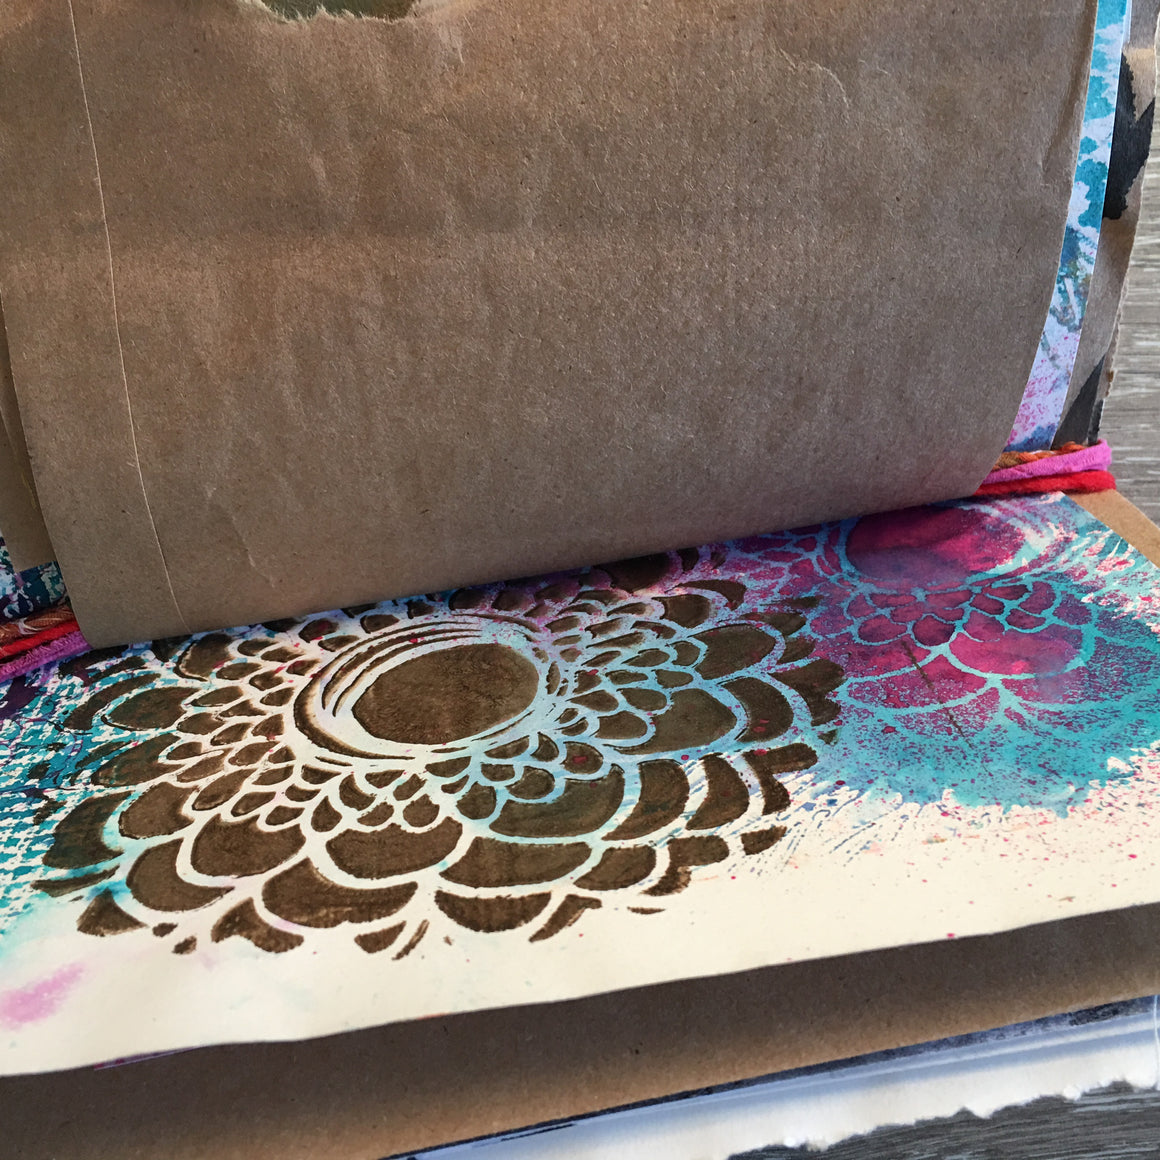 {wanderlust} FREE spirit handmade art journal by traci bautista